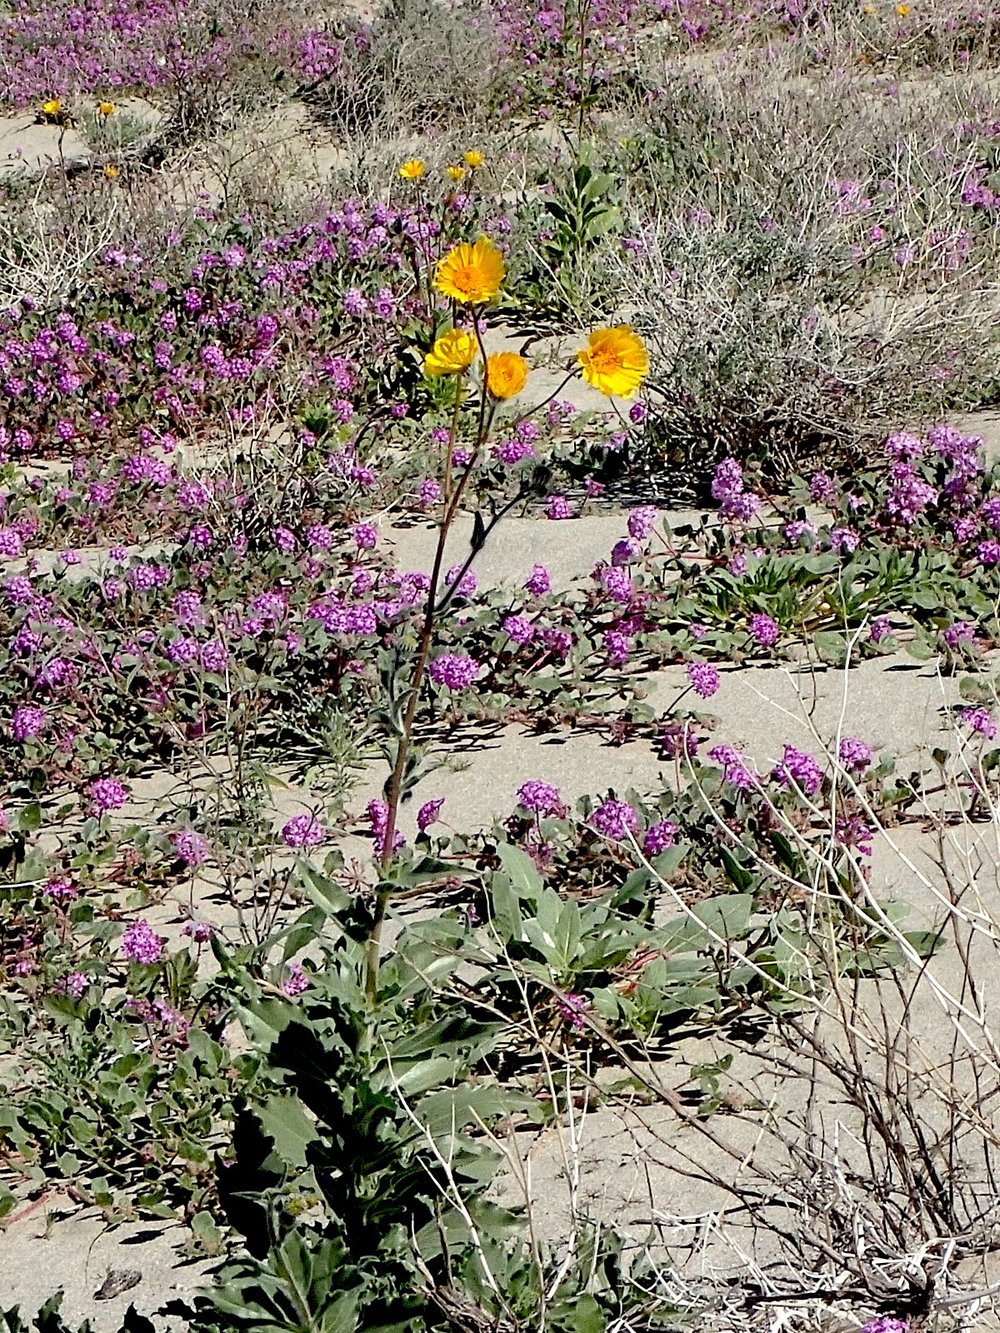 Hairy Desert Sunflower (Geraea canescens) and Sand Verbena (Abronia villosa) PC: Lee Gordon